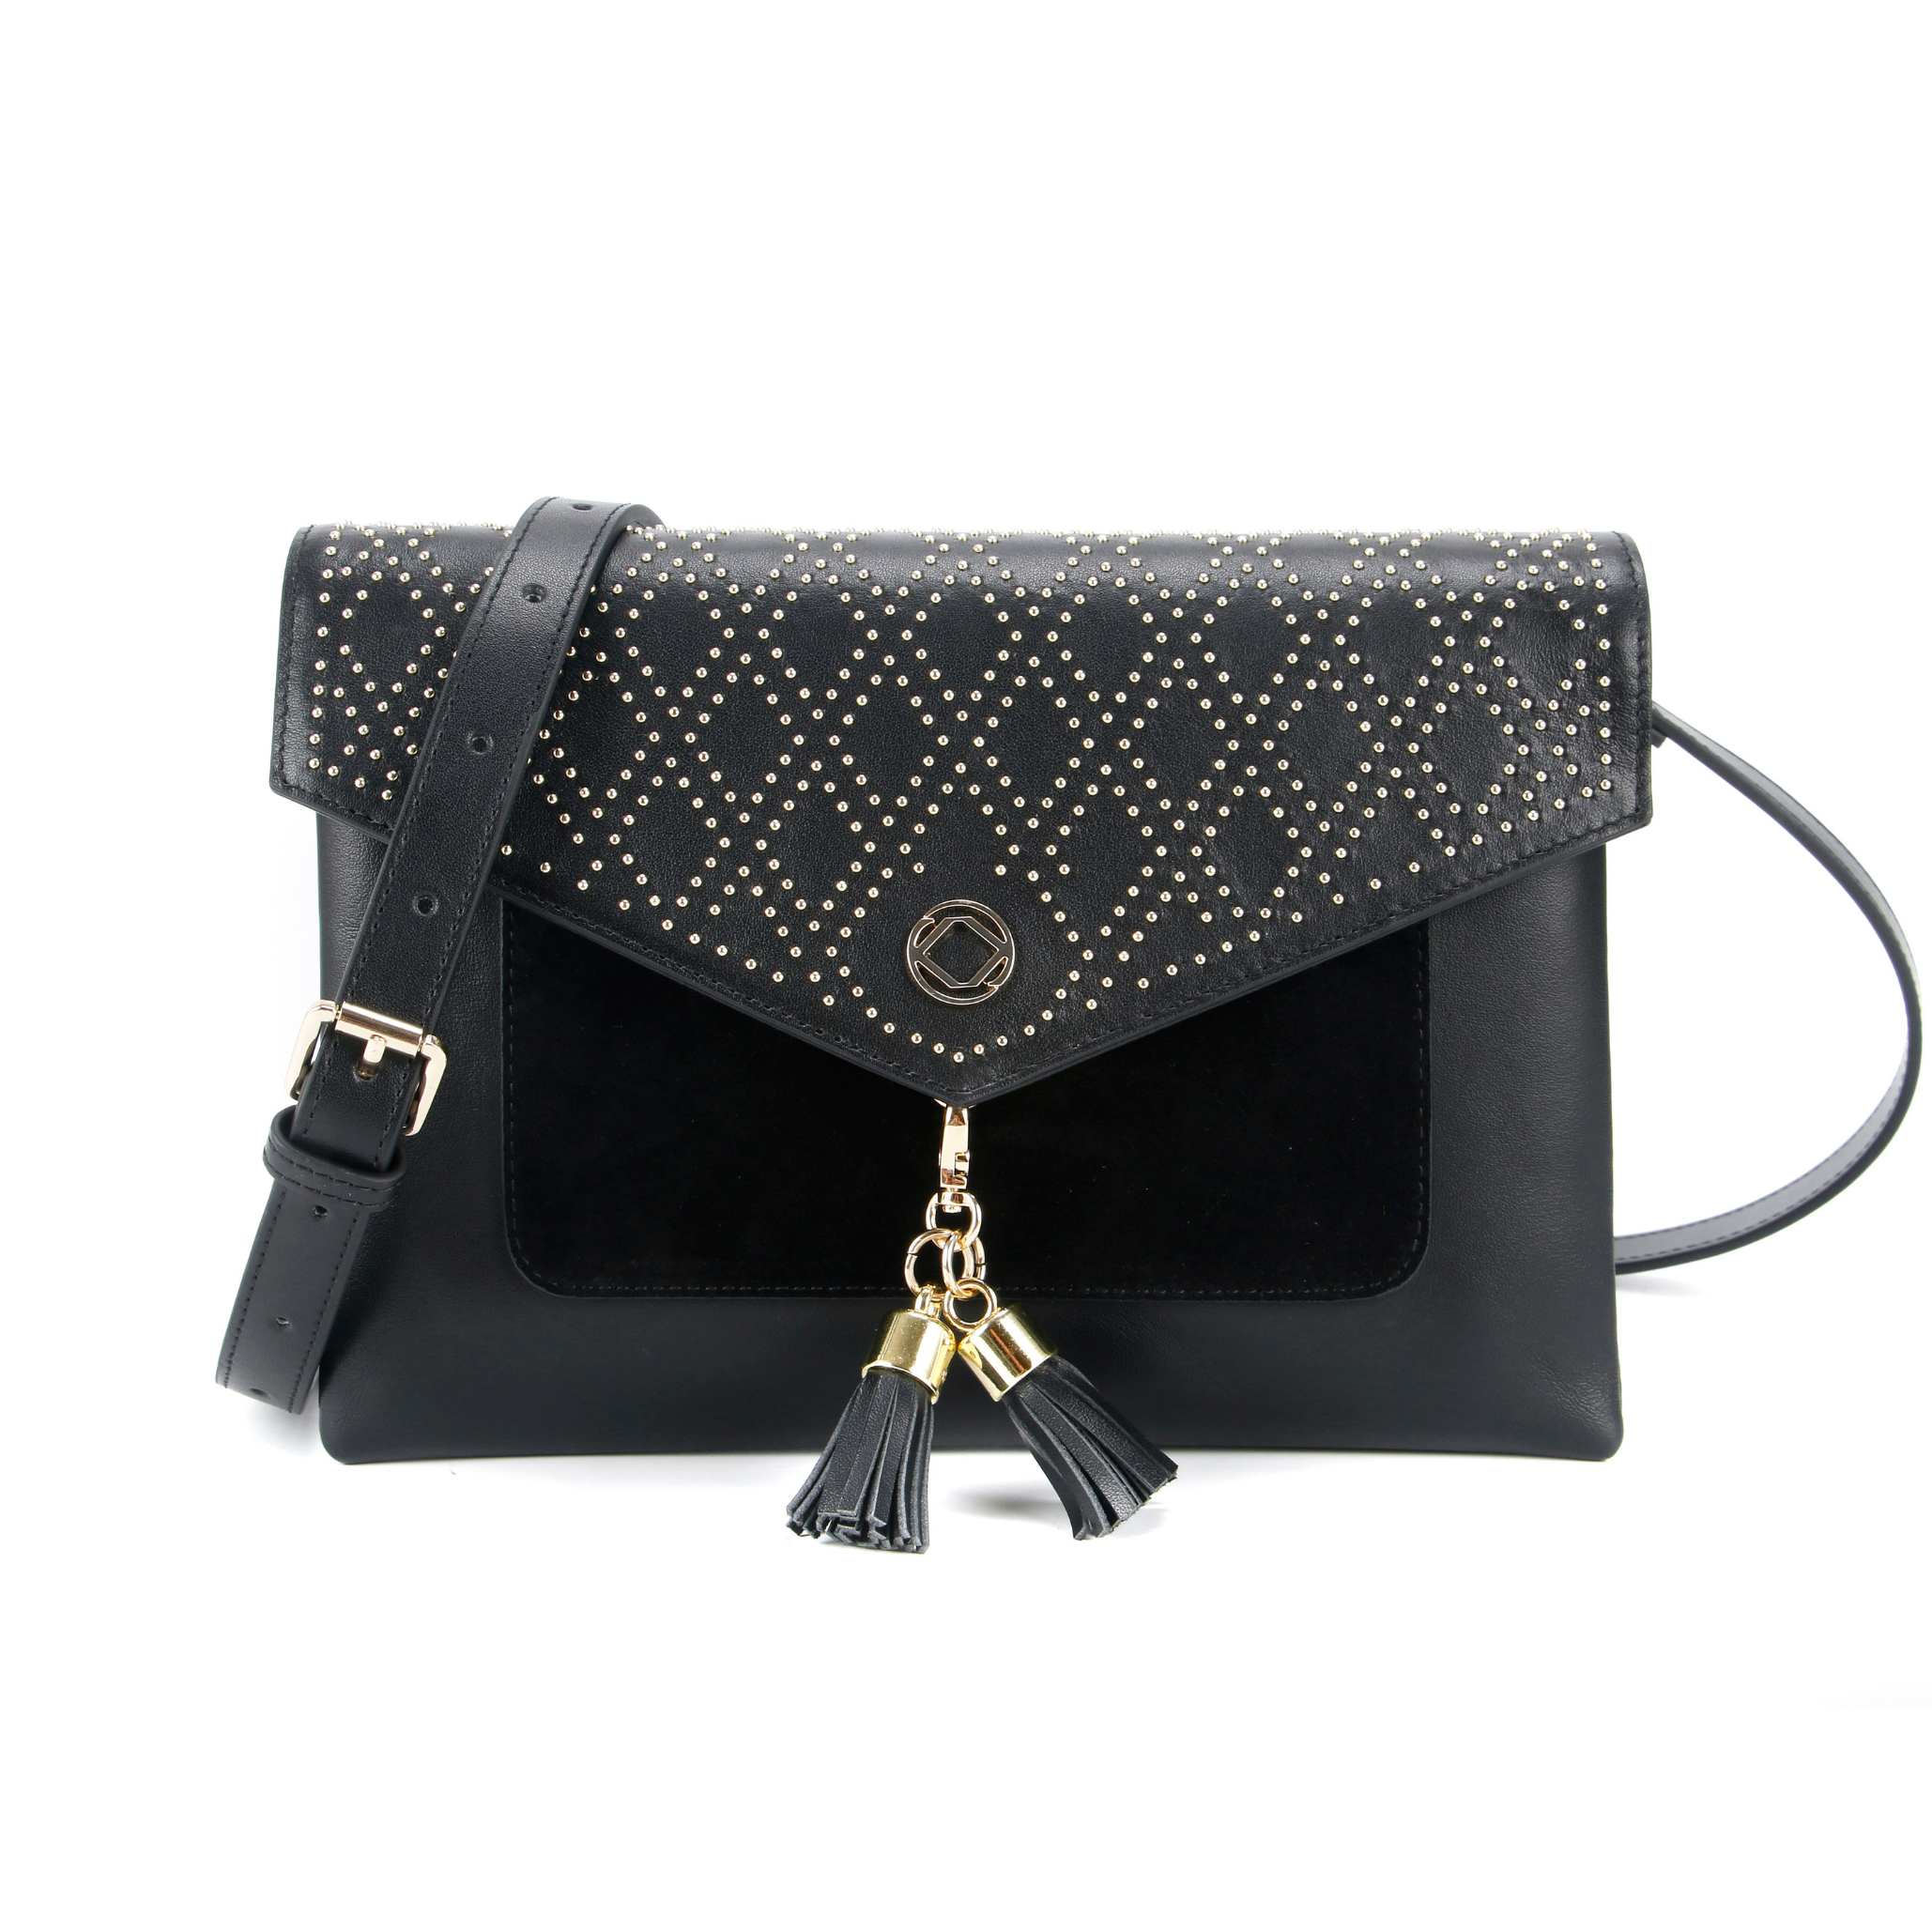 Black studded leather clutch and cross body bag -front view. trimmed with suede and removable tassels